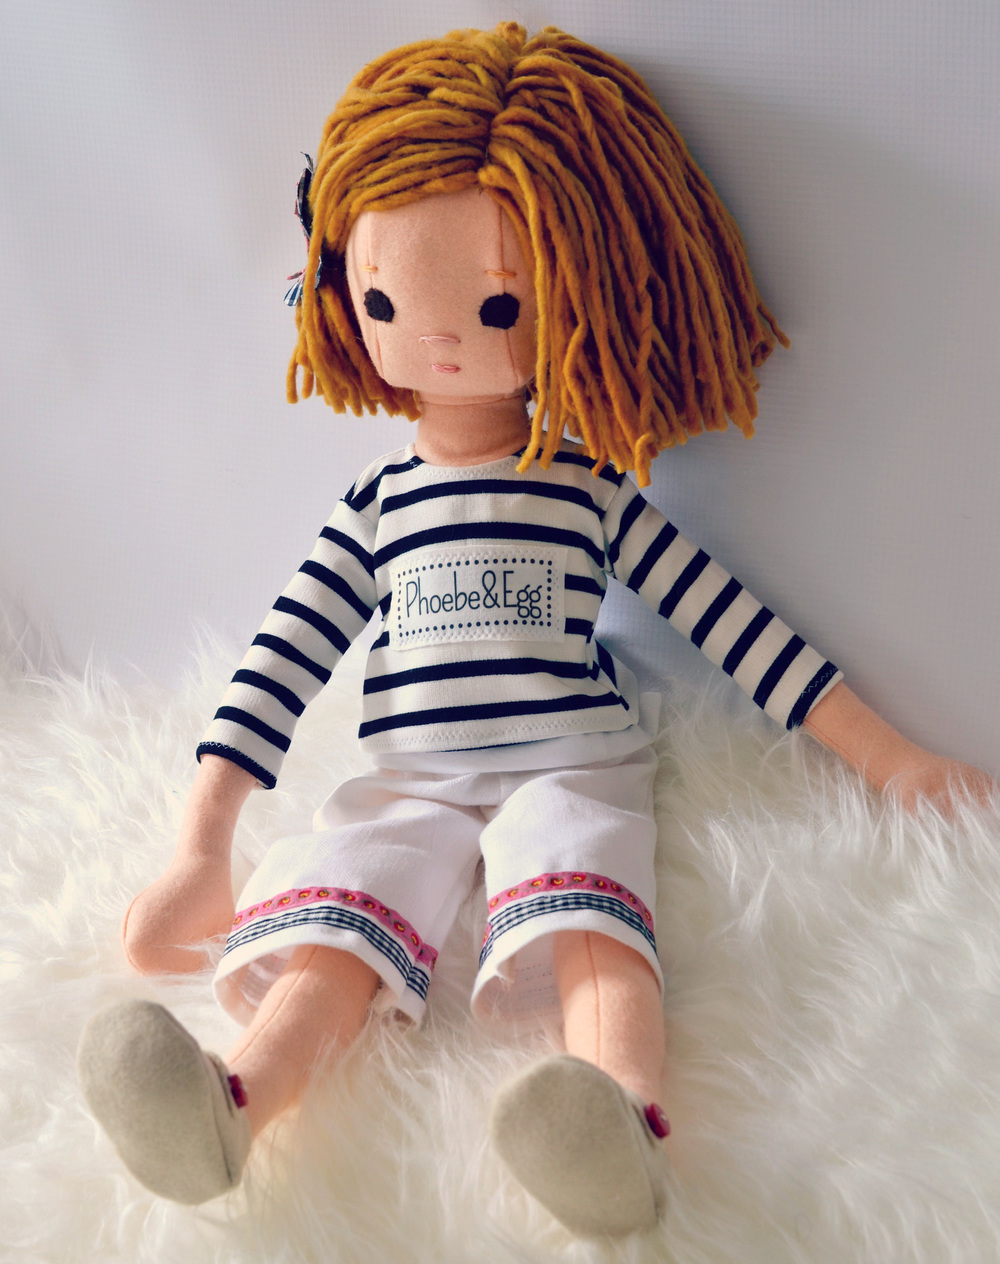 The Handmade Dolls-617.jpg